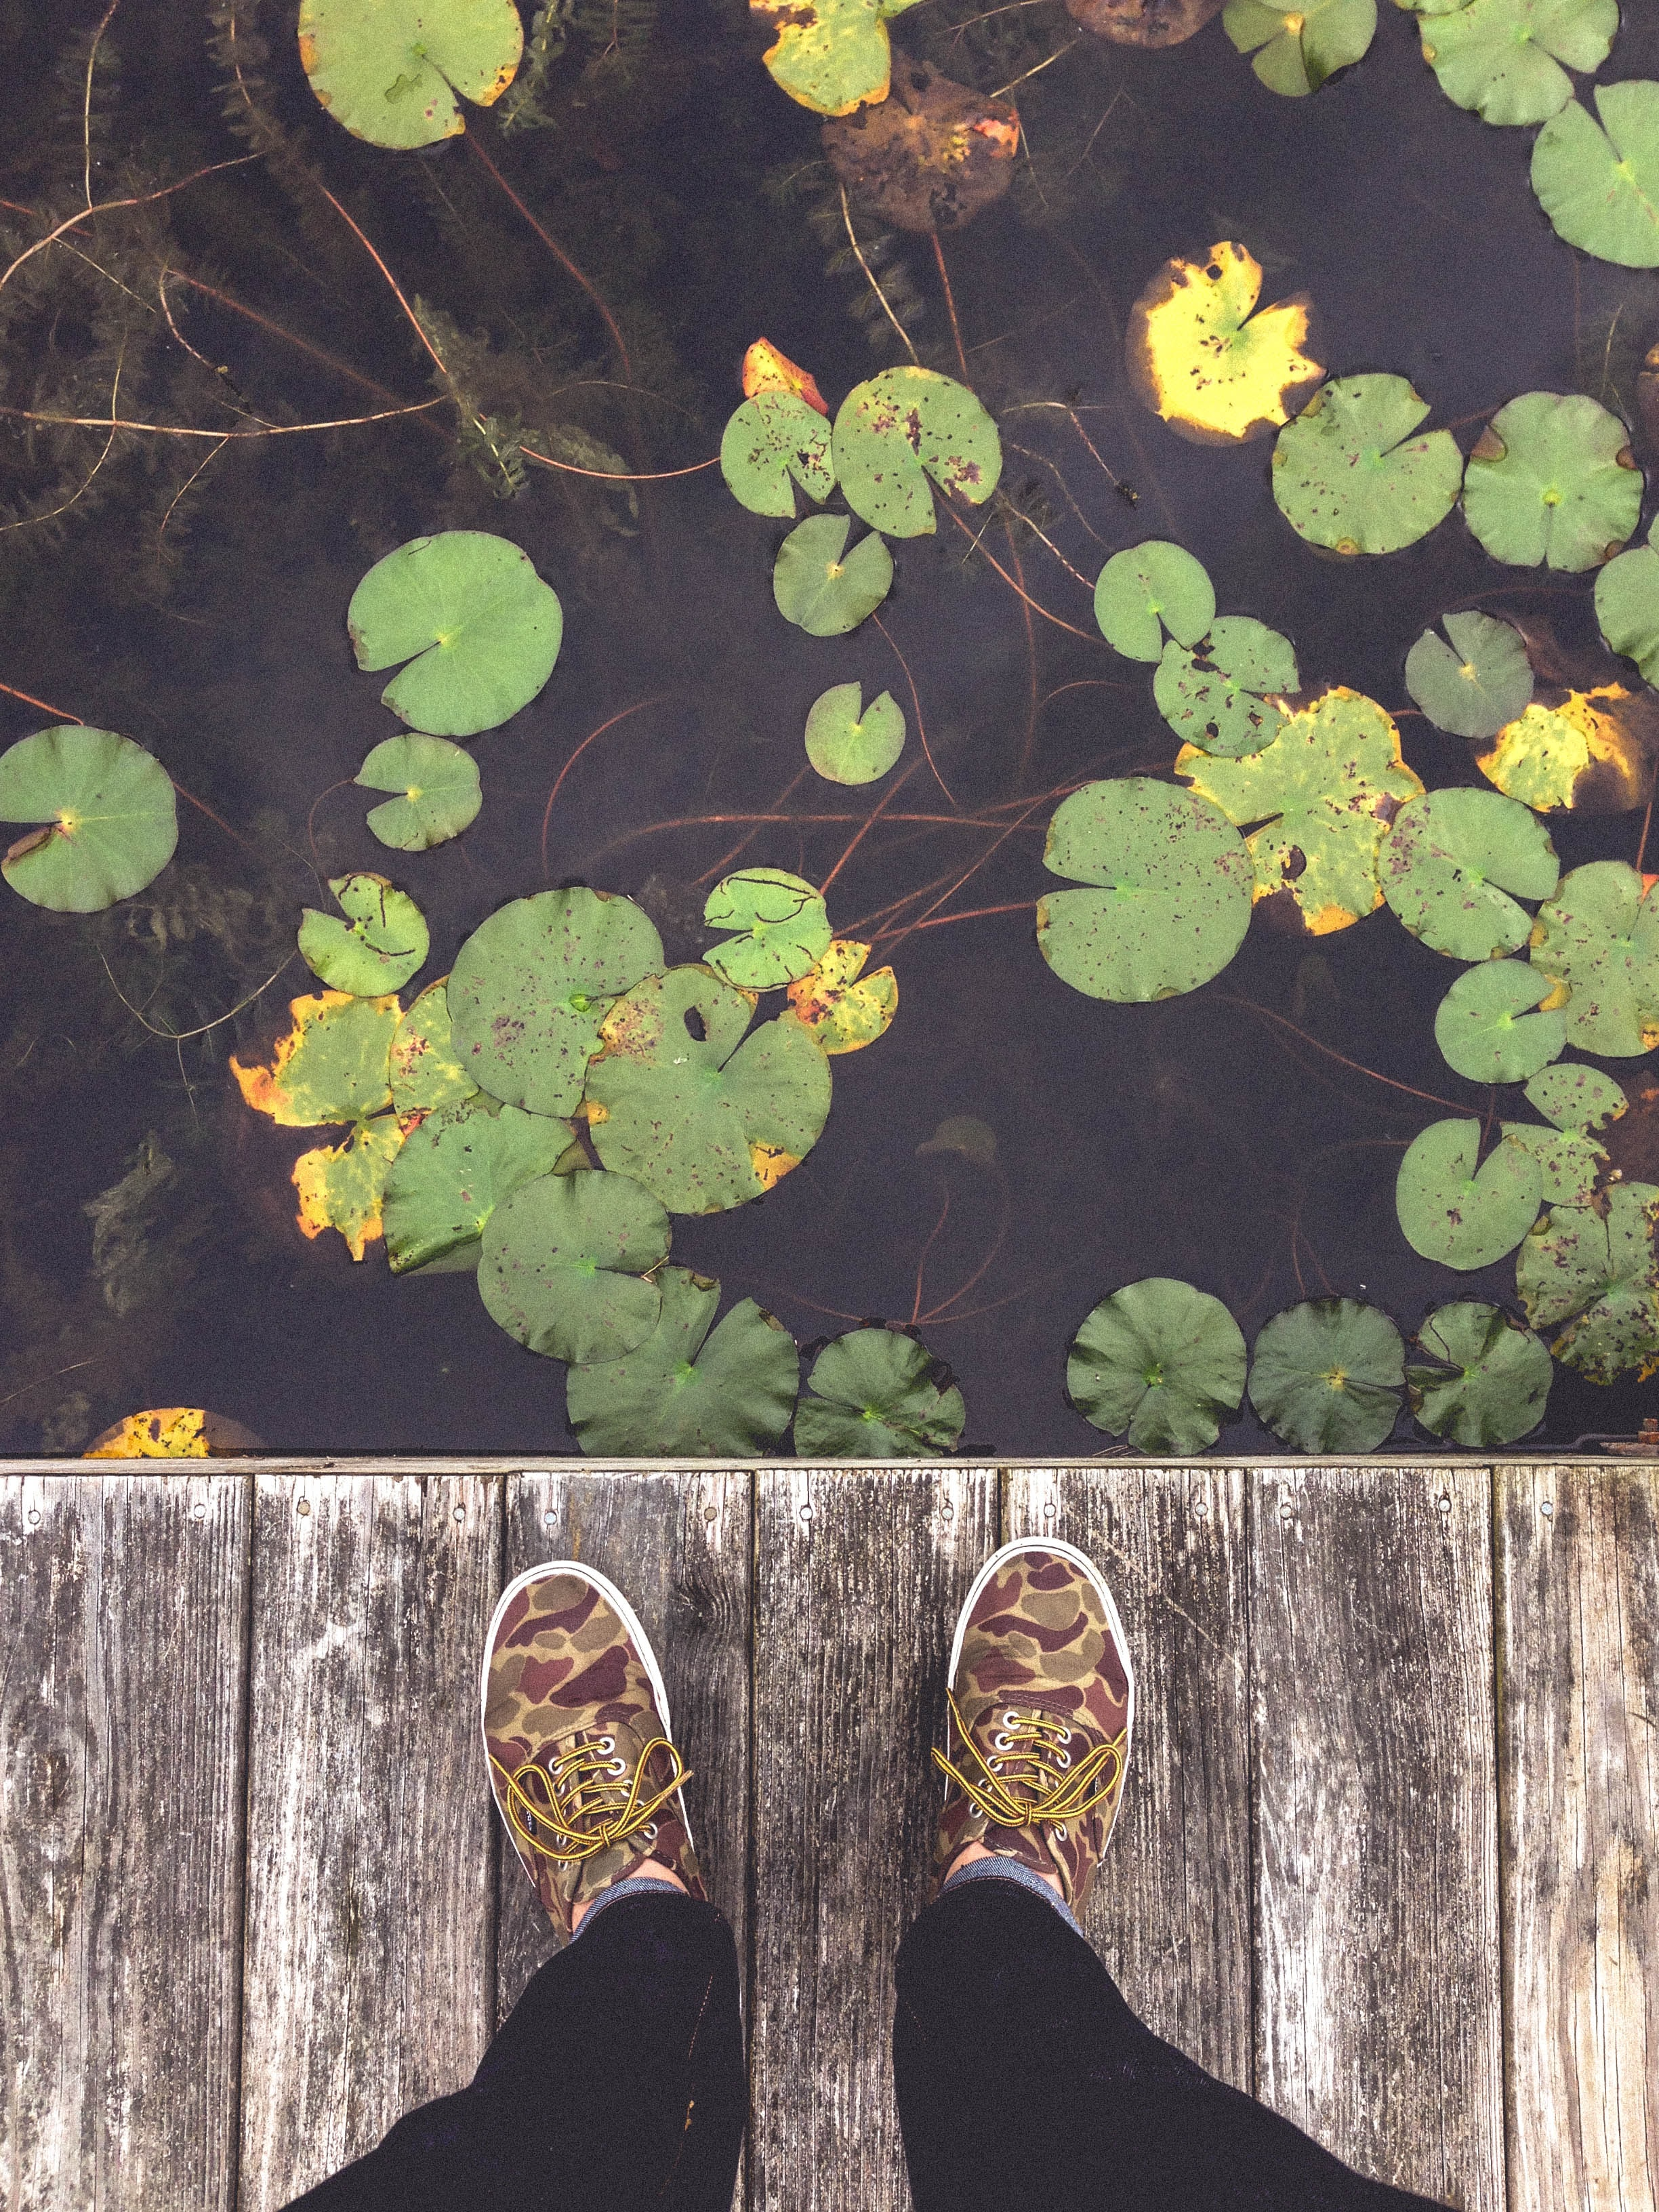 An overhead shot of a person's feet on a wooden deck next lily pads on a pond